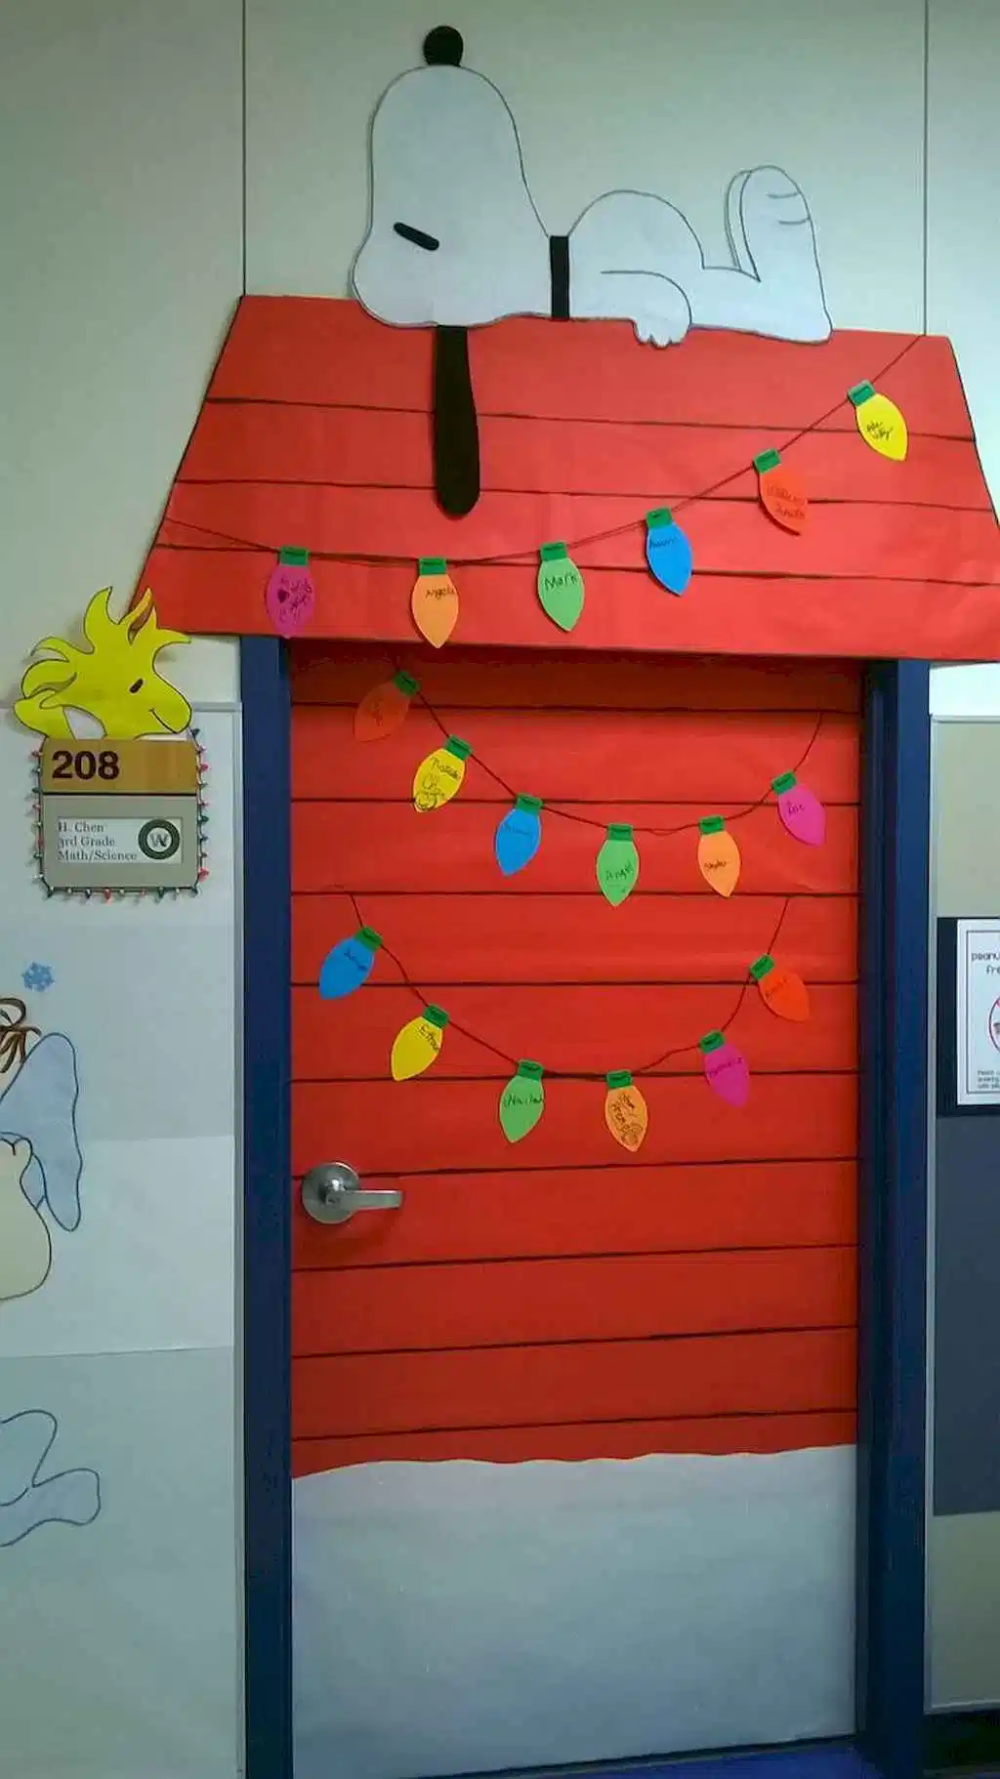 50 Simple DIY Christmas Door Decorations For Home And School (3) - LivingMarch.com #christmasdoordecorationsforschool